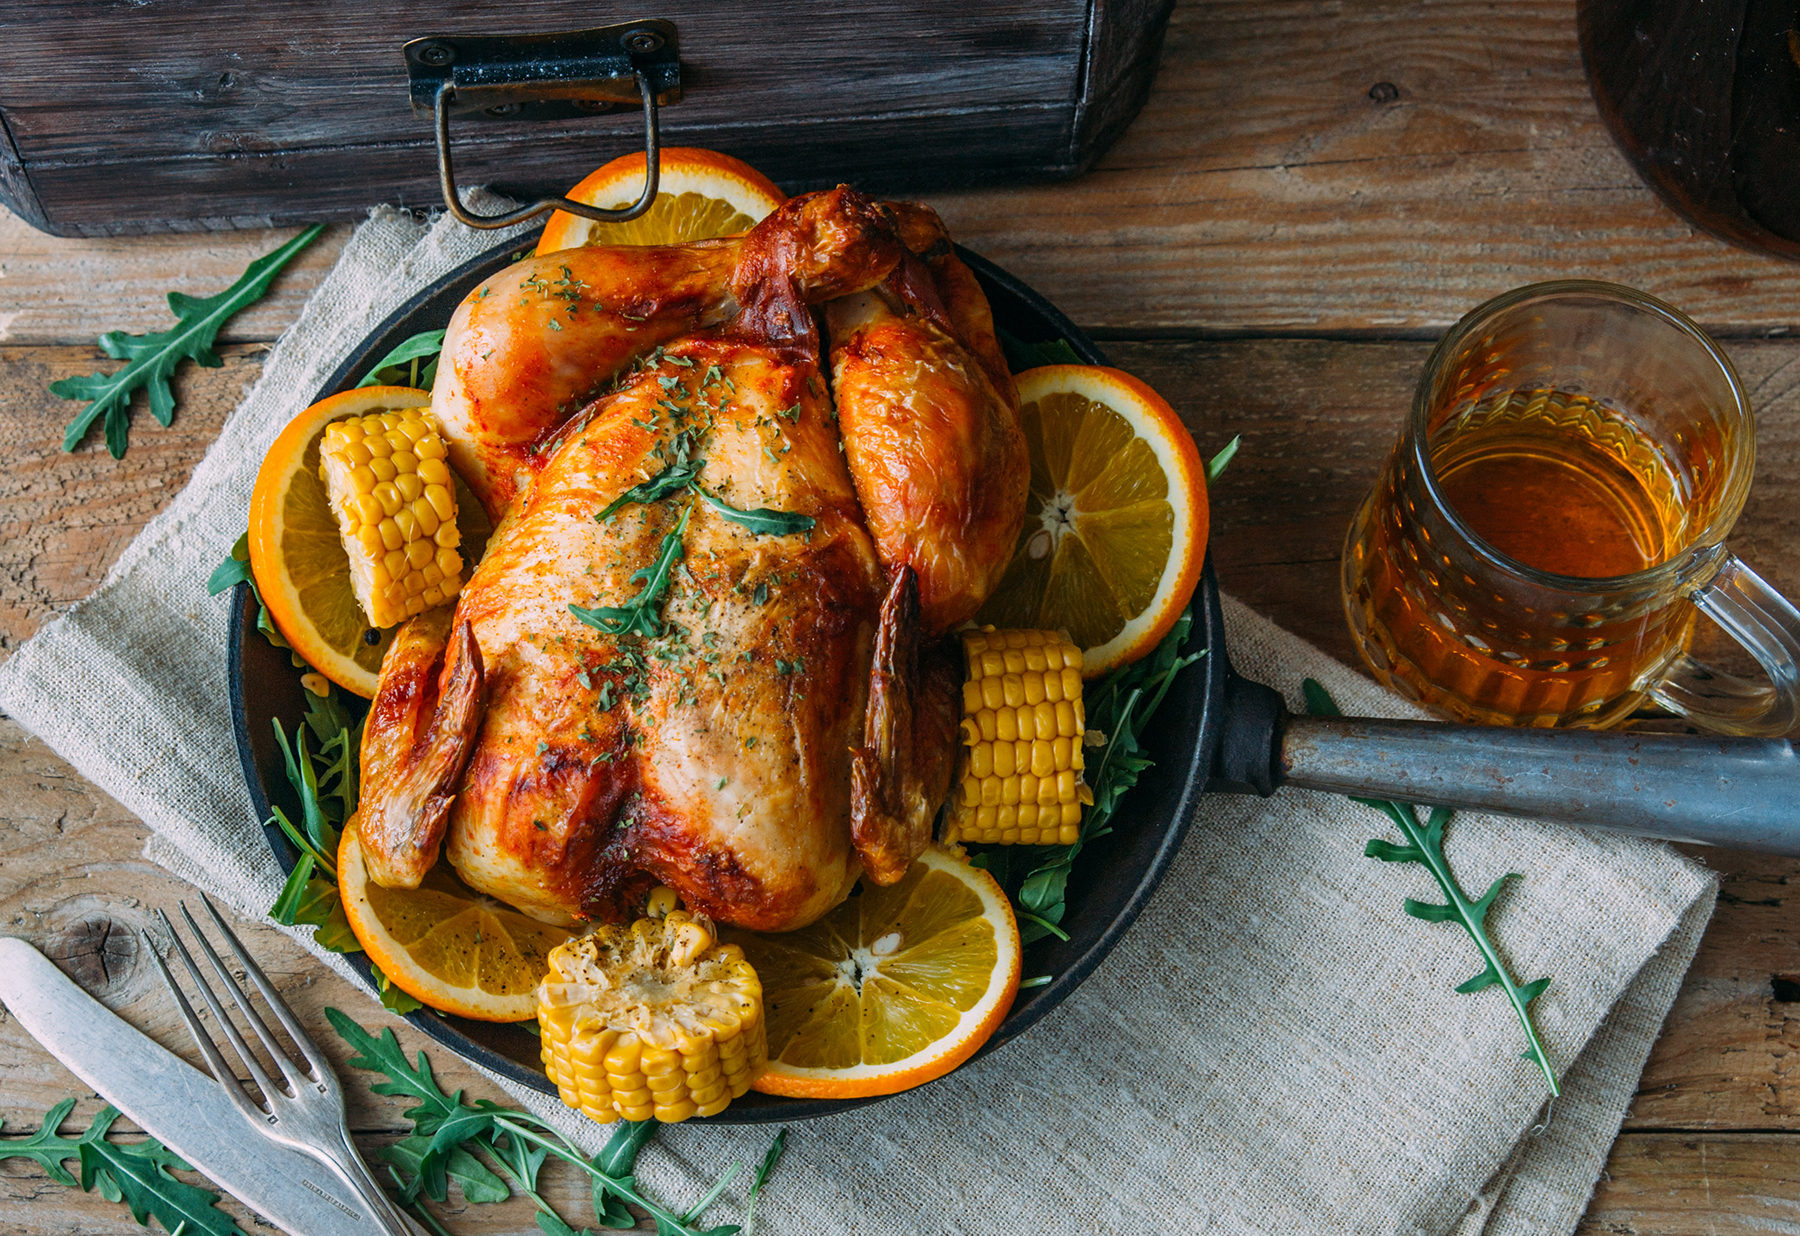 How to Cook a Turkey and Carve It Too